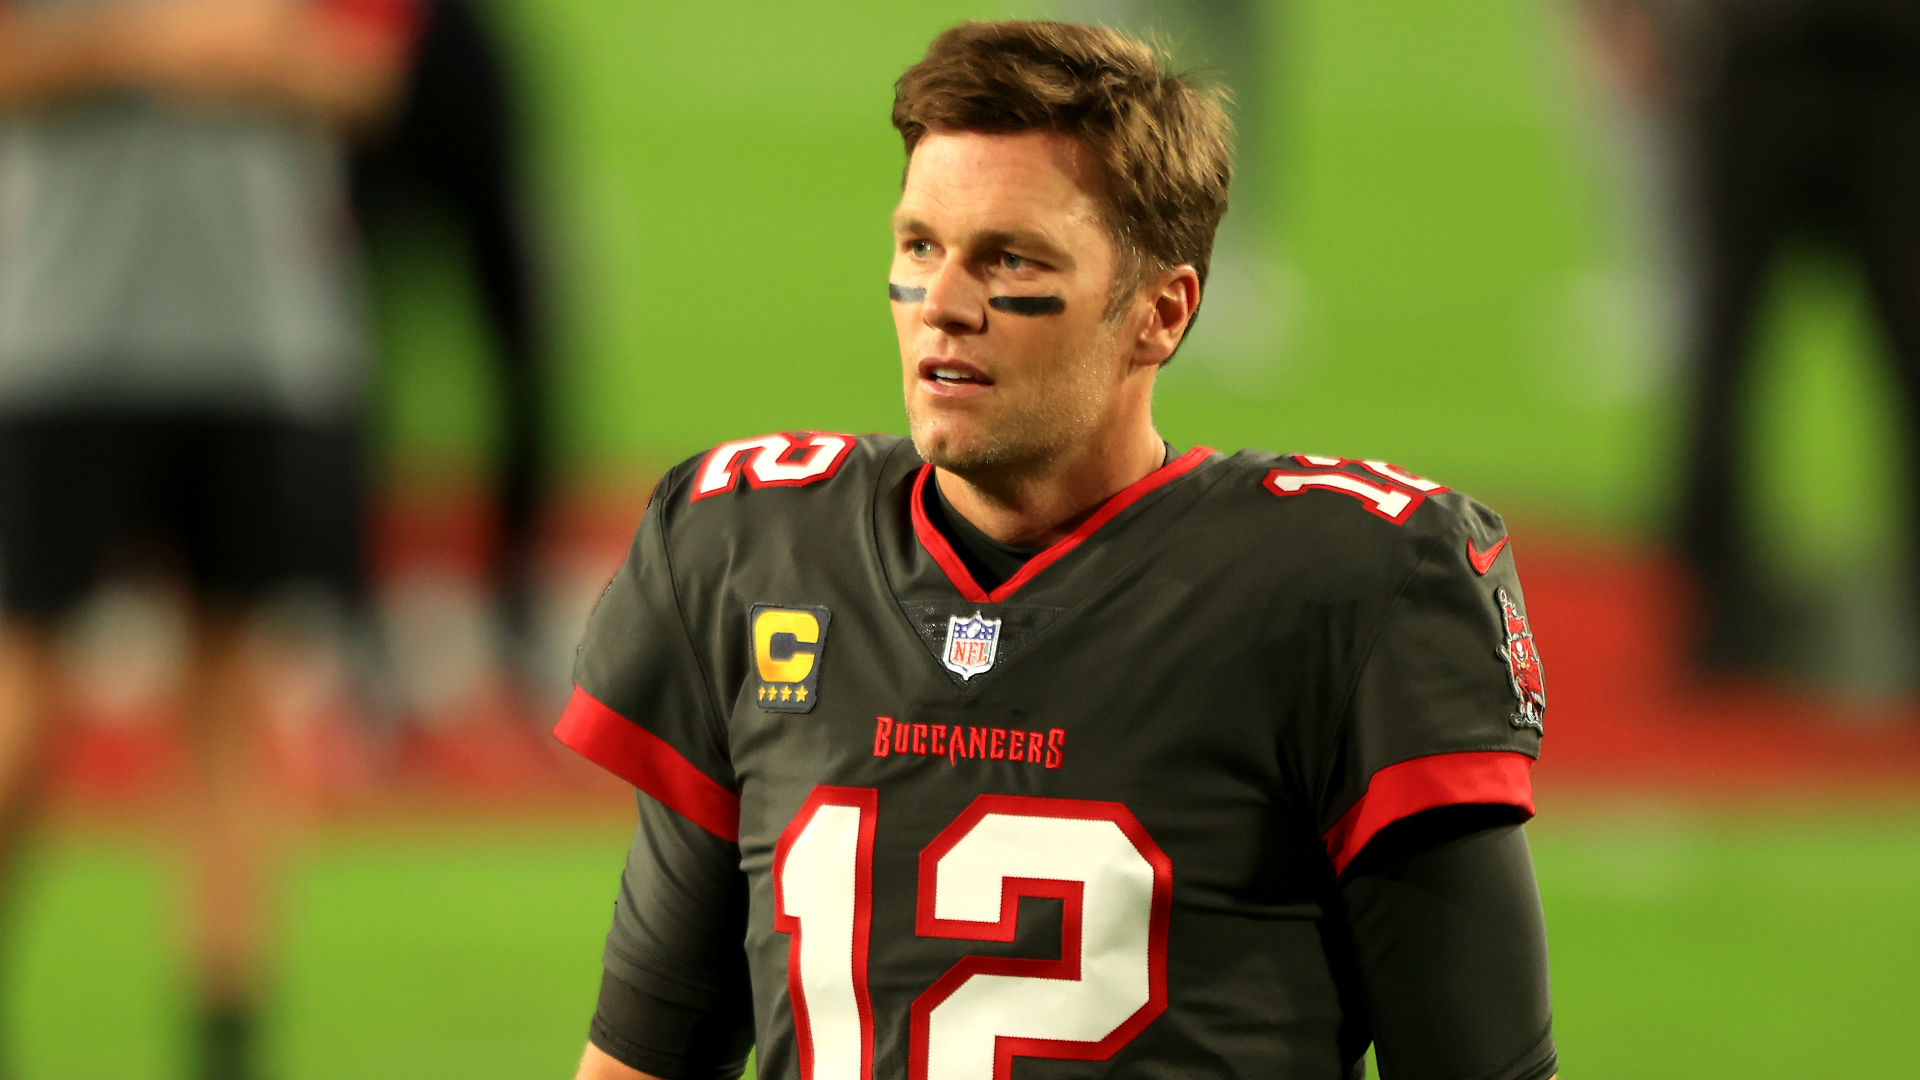 Tom Brady looks like a Wizard in Bucs uniform — but not the kind that will create magic in Tampa